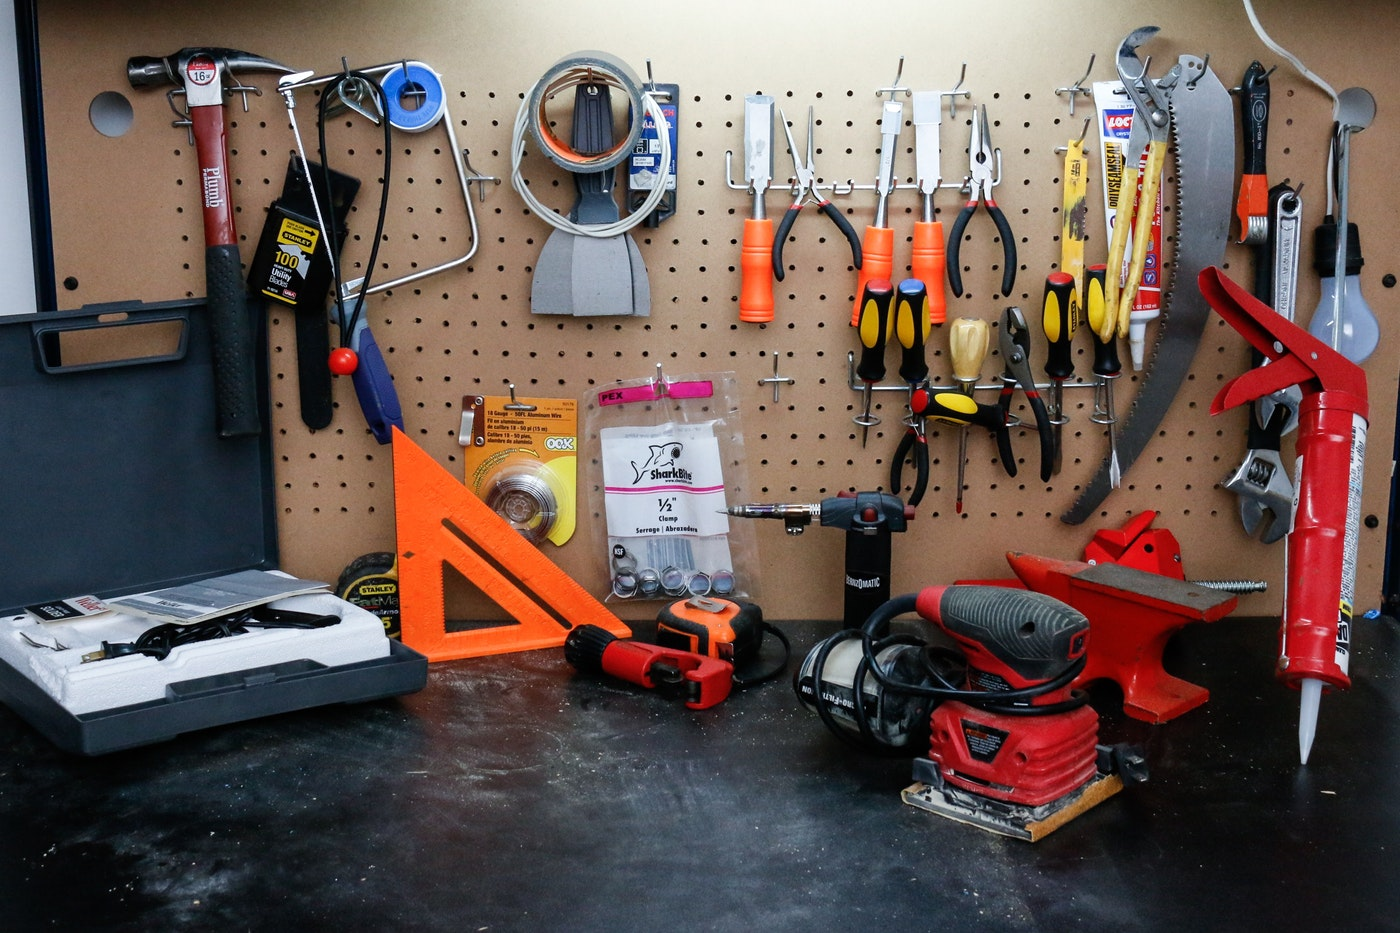 Workshop and Household Tools : EBTH